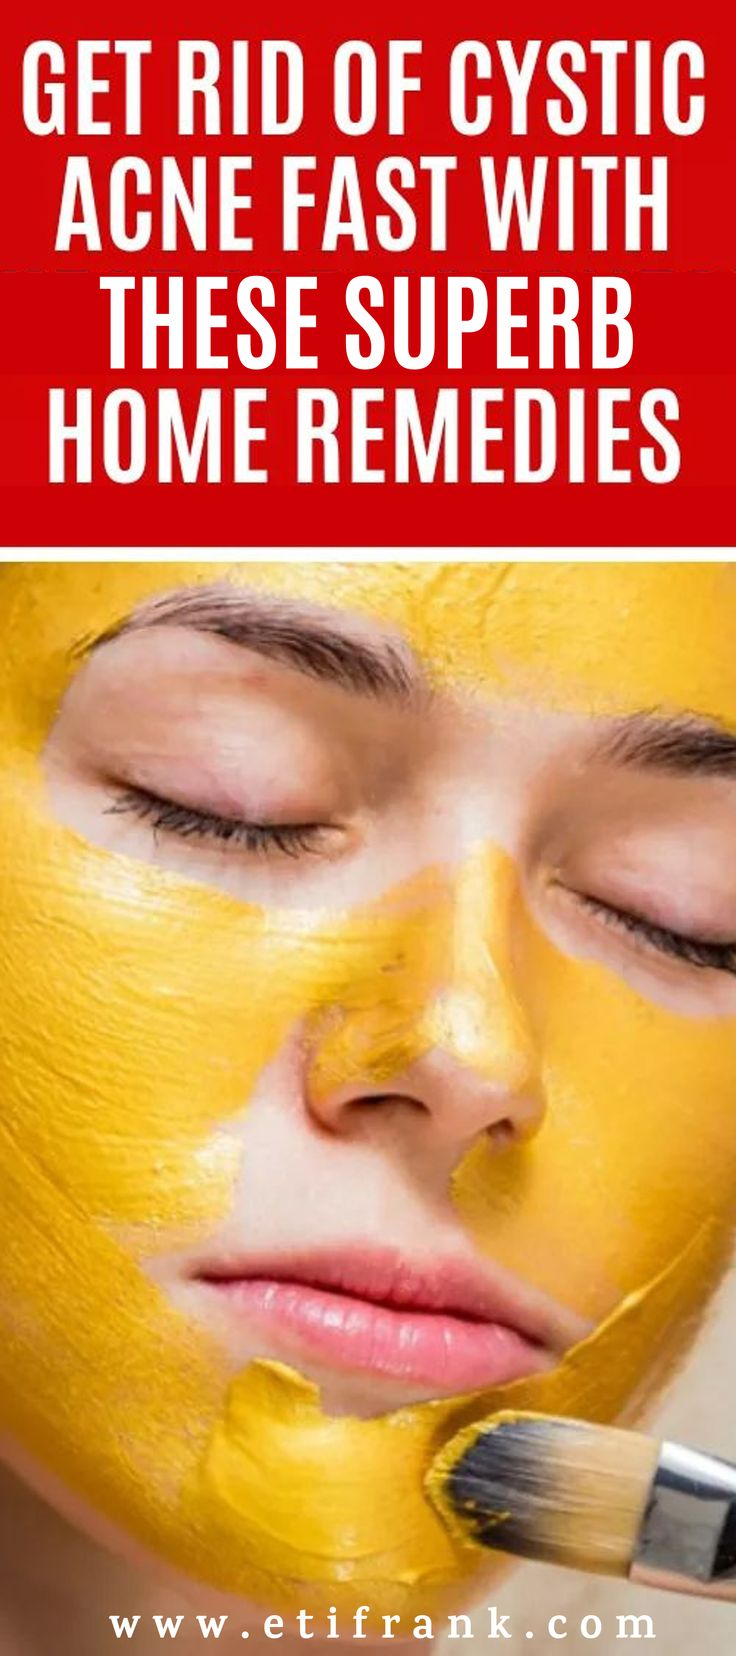 GET RID OF CYSTIC ACNE FAST WITH THESE SUPERB HOME REMEDIES